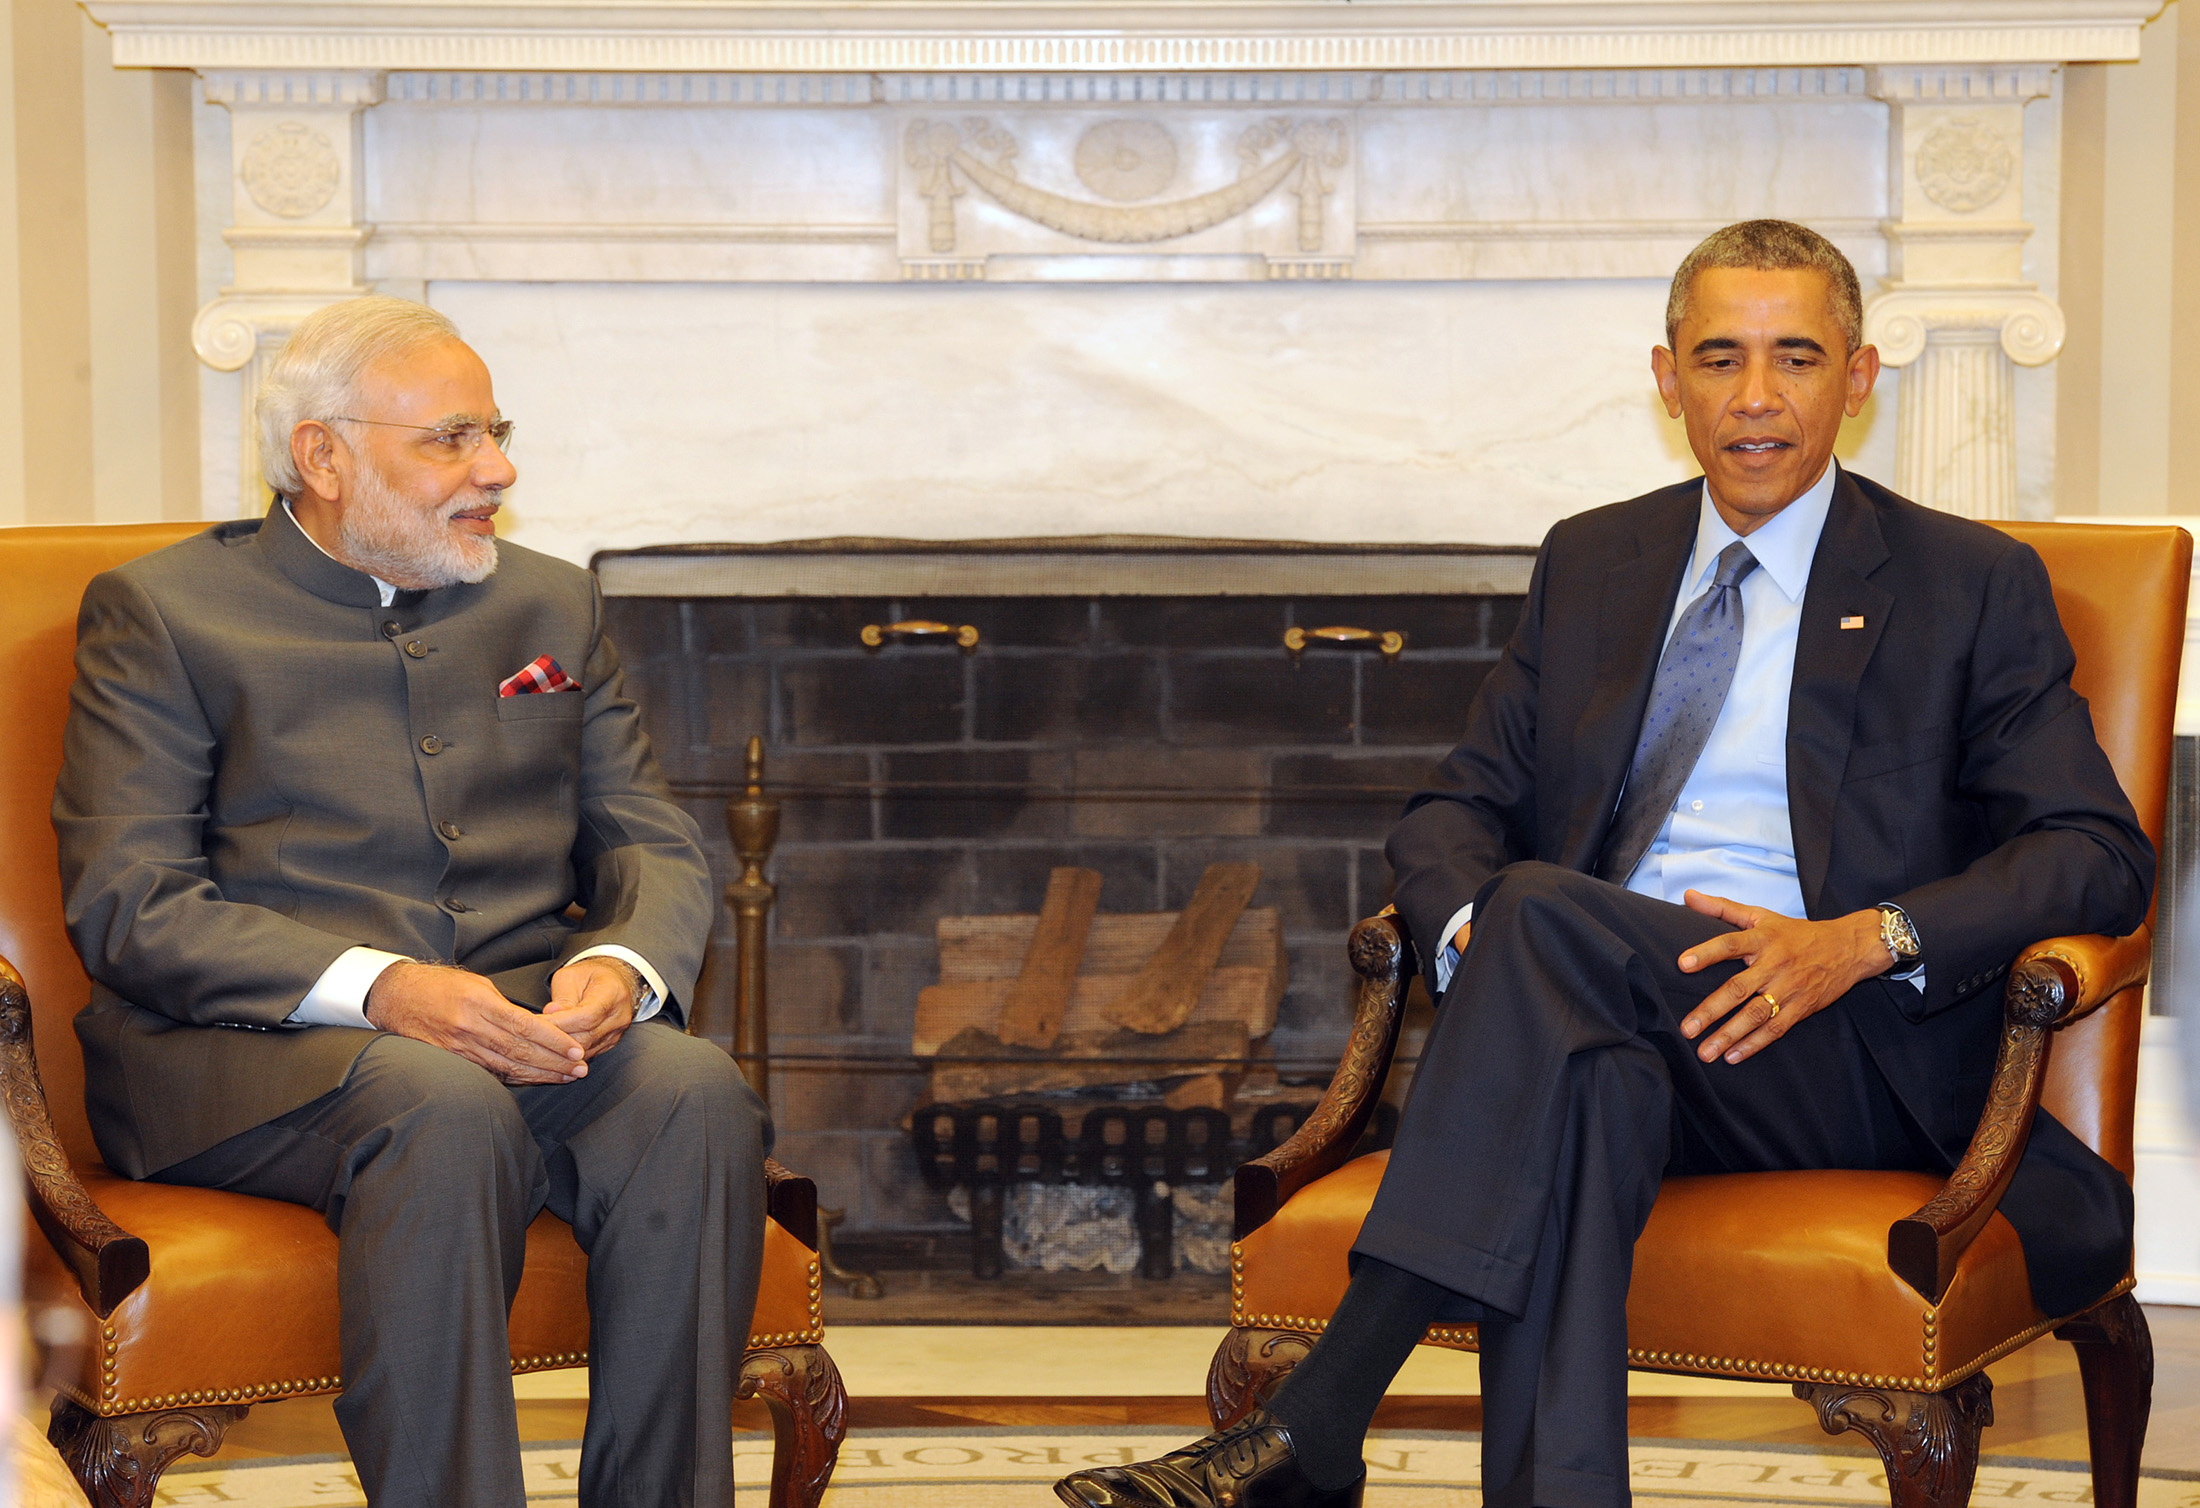 The-Prime-Minister-Narendra-Modi-in-a-bilateral-meeting-with-the-US-PresidentBarack-Obama-at-the-White-House.